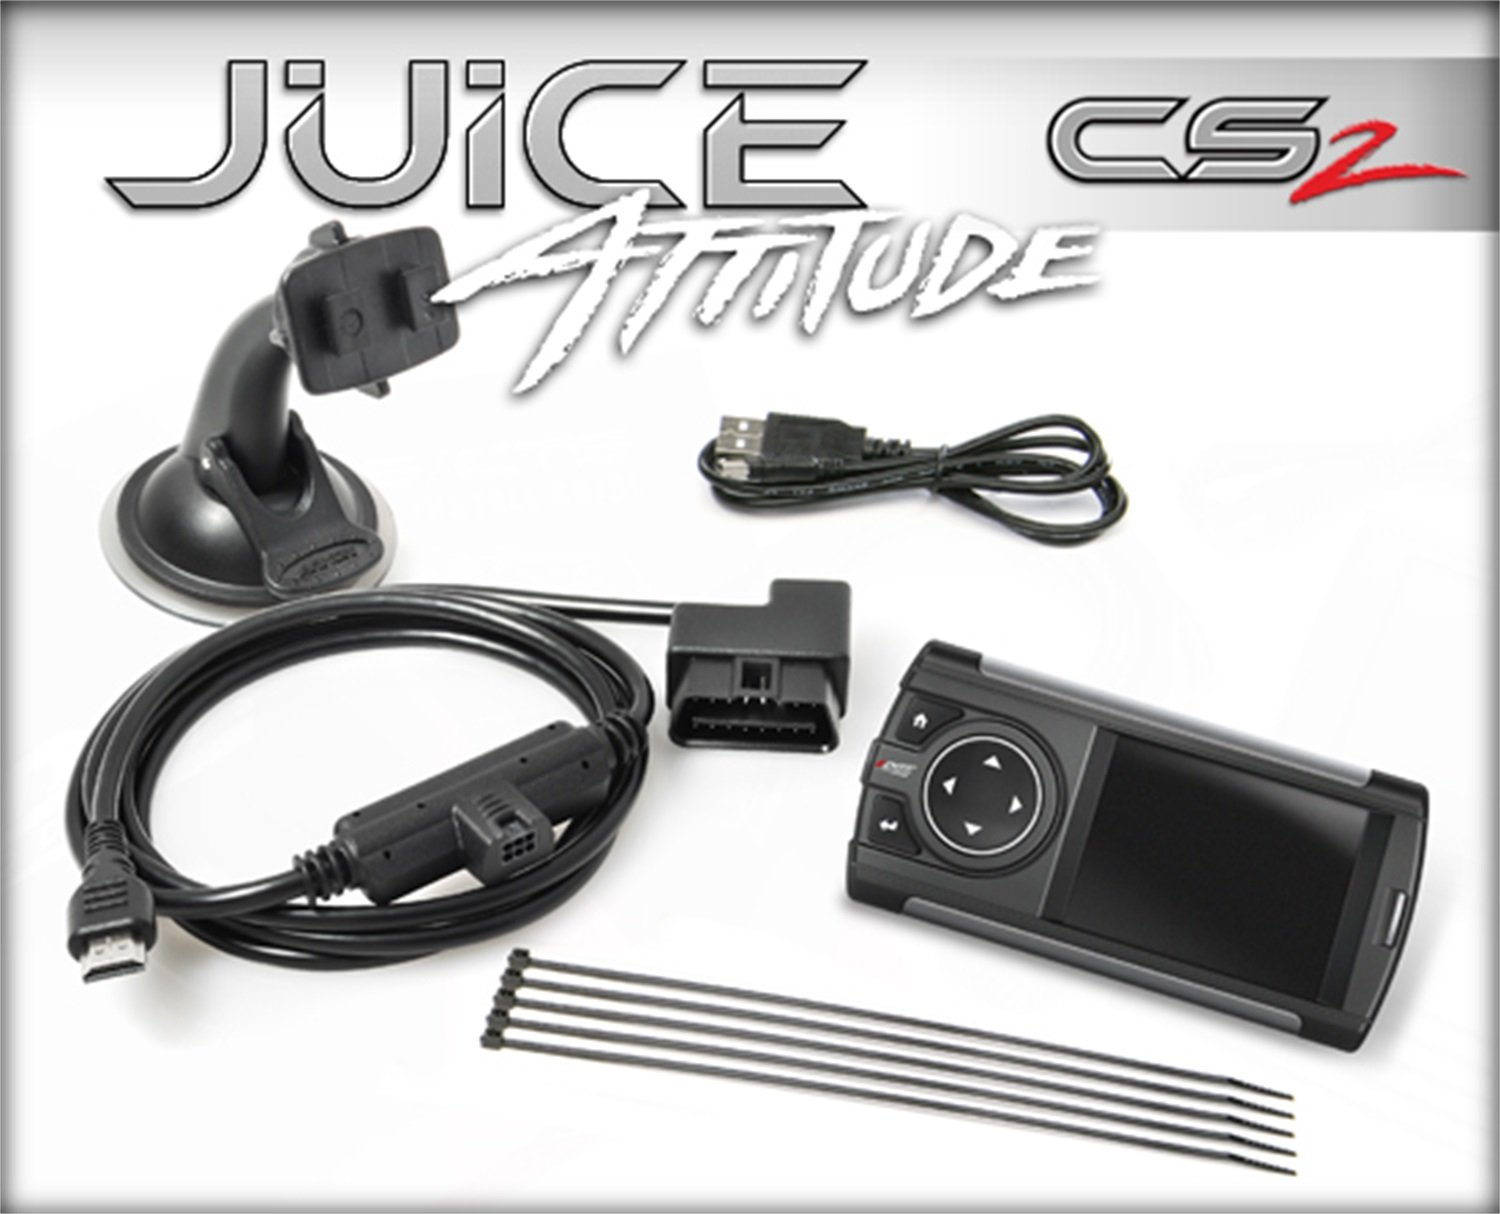 Edge Products 31407 Juice with Attitude CS1 Non-CARB Compliant